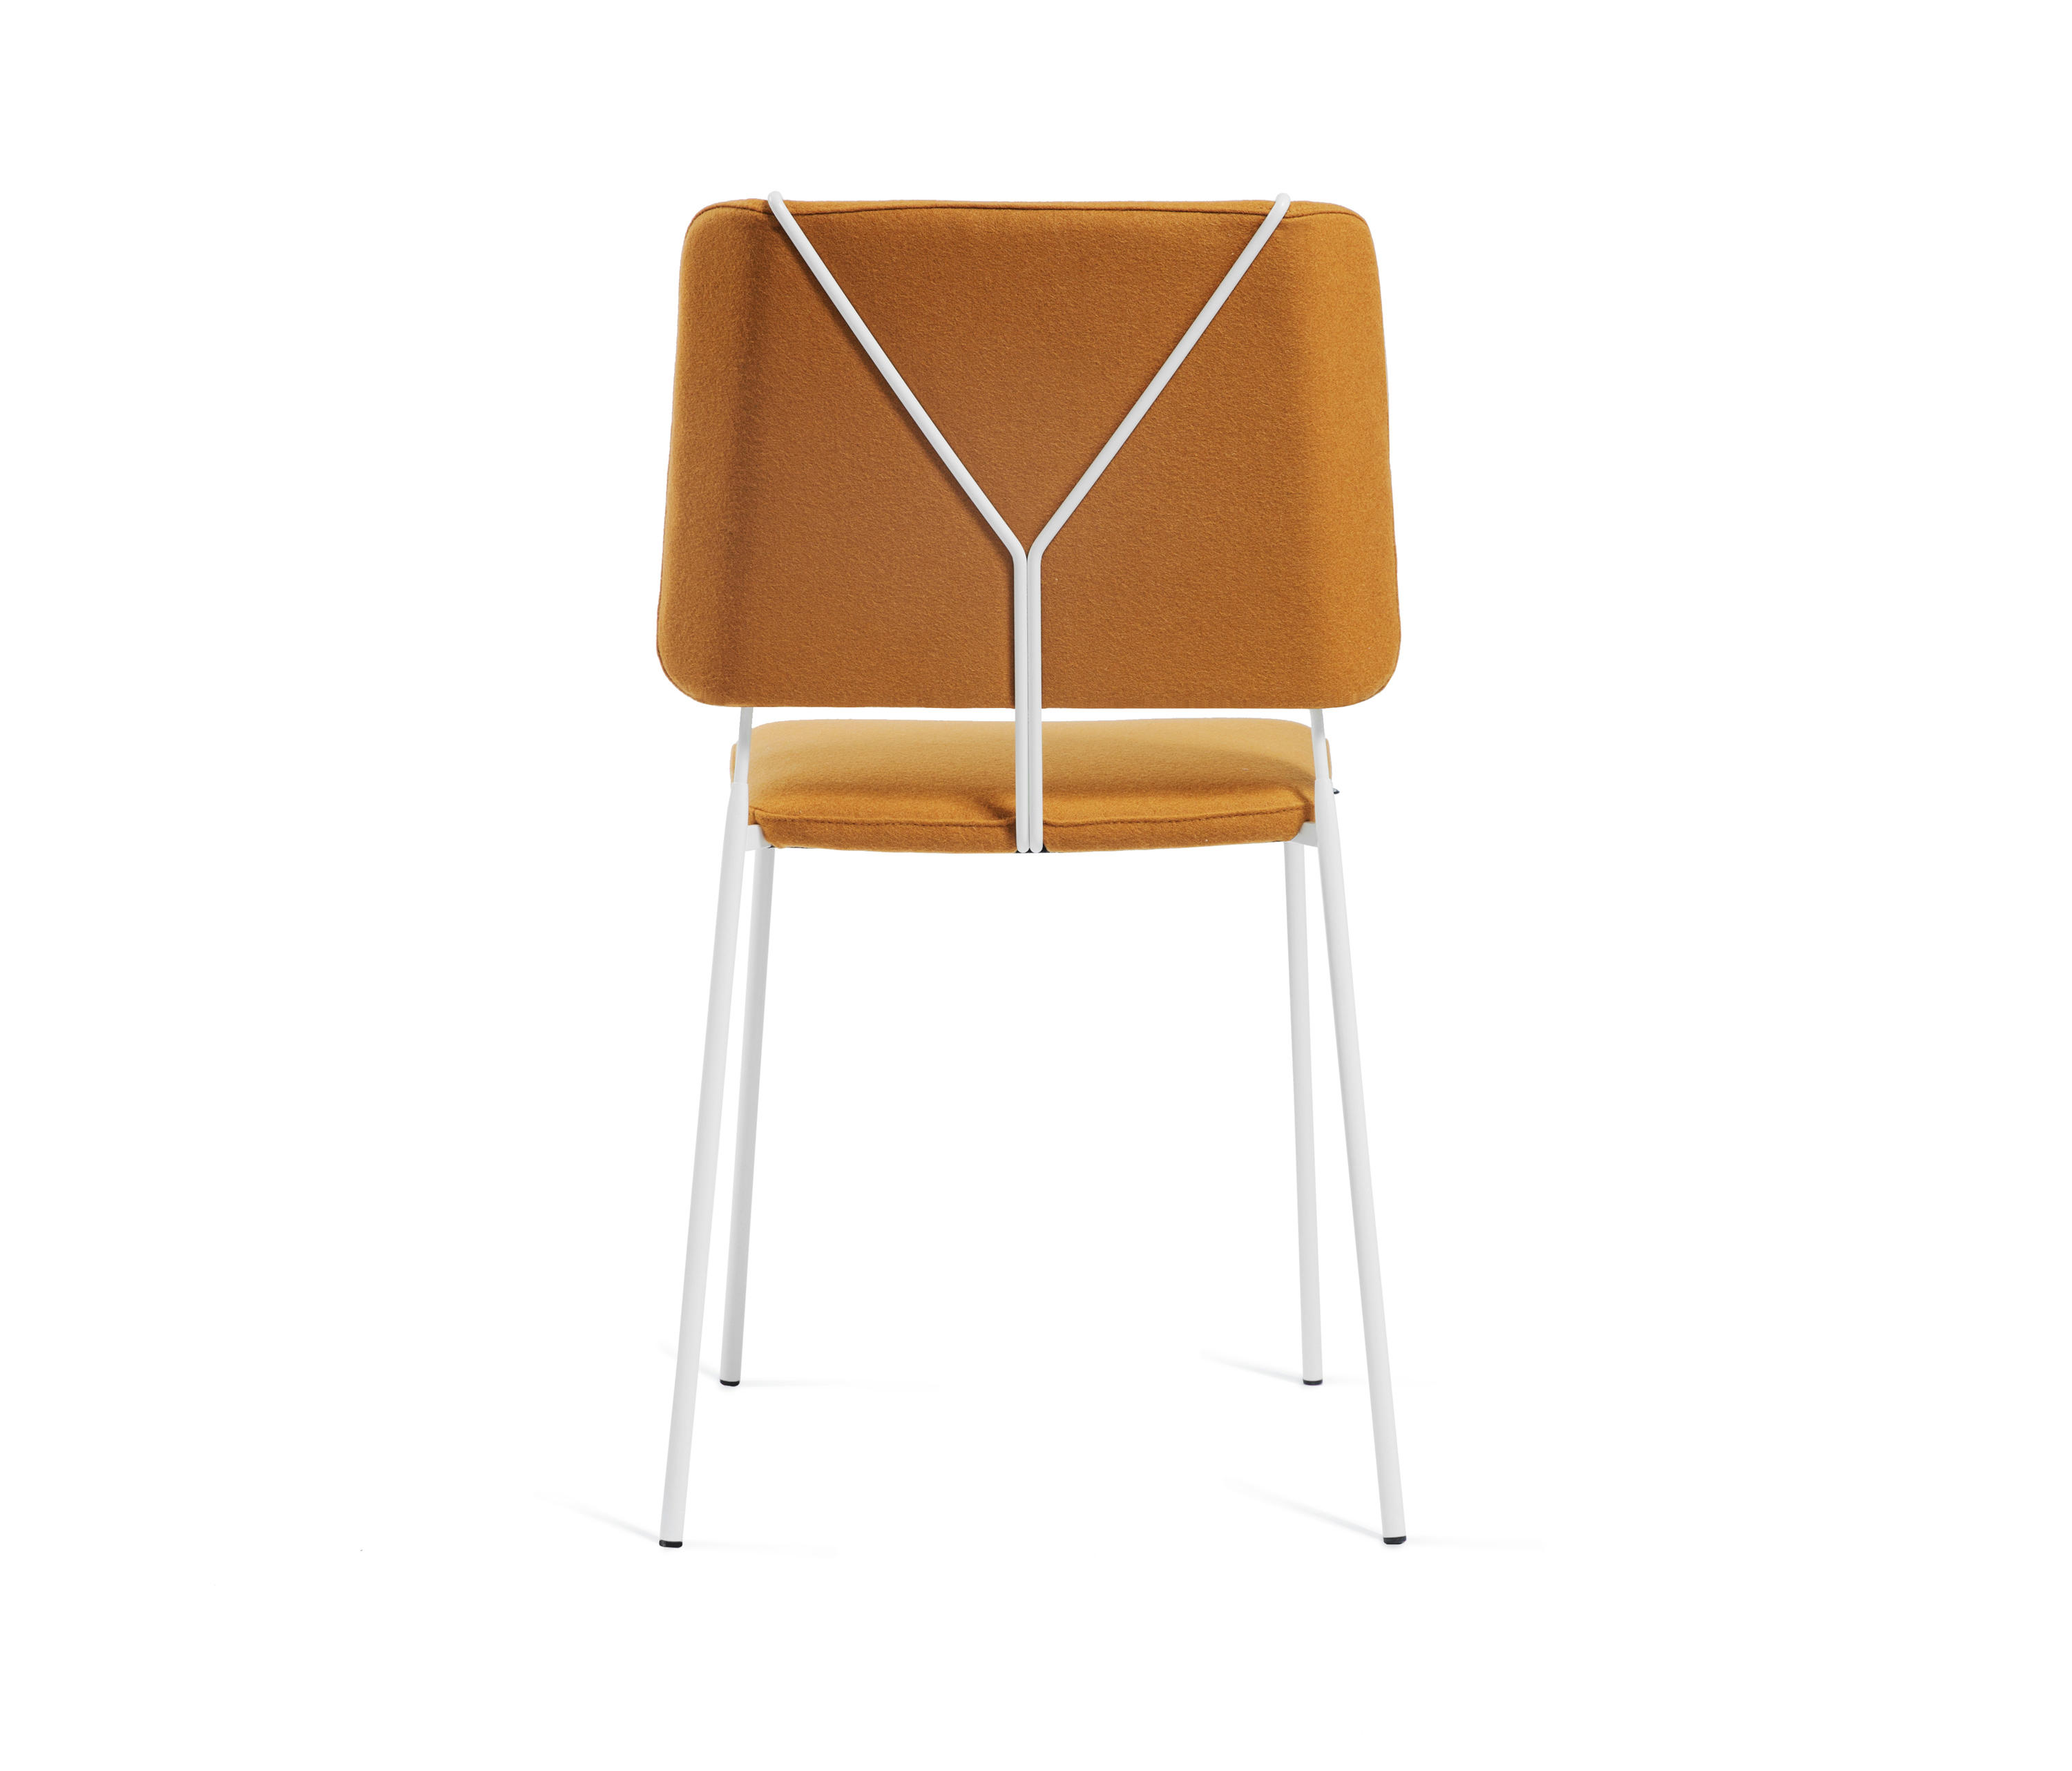 Exceptionnel Frankie By Johanson | Chairs Frankie By Johanson | Chairs ...